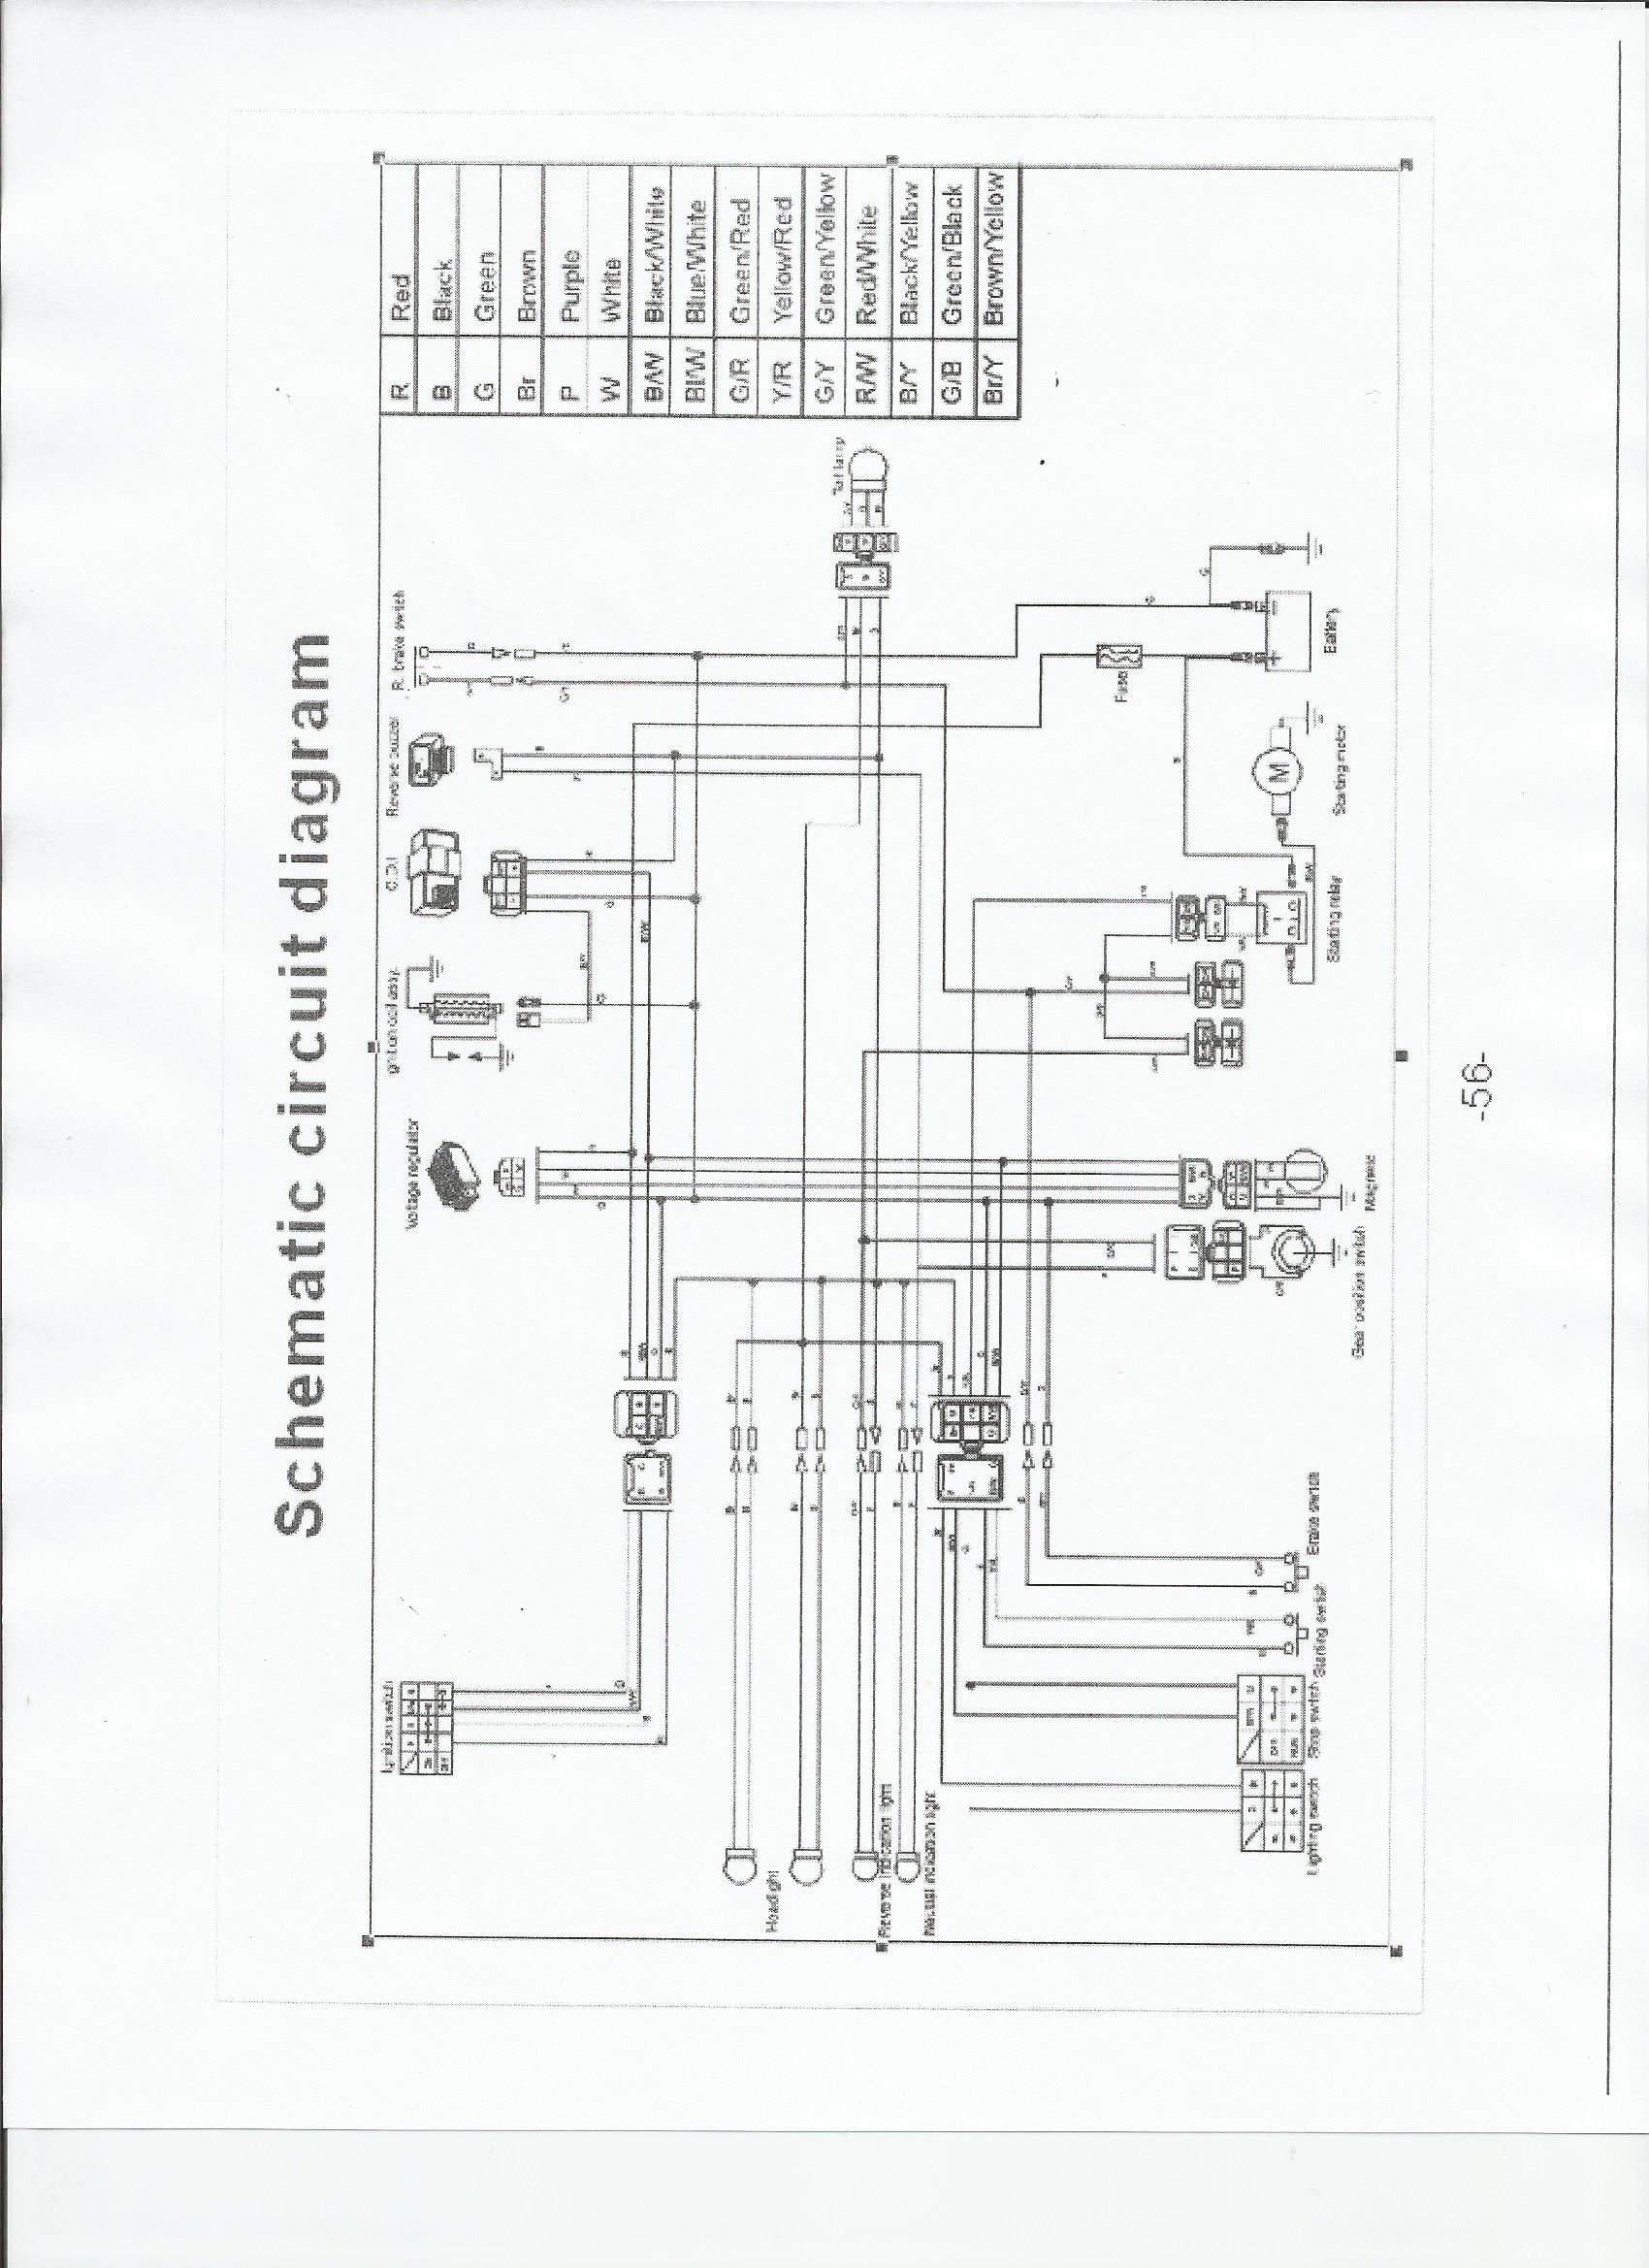 tao tao wiring schematic taotao mini and youth atv wiring schematic familygokarts support loncin 110cc wiring diagram at panicattacktreatment.co